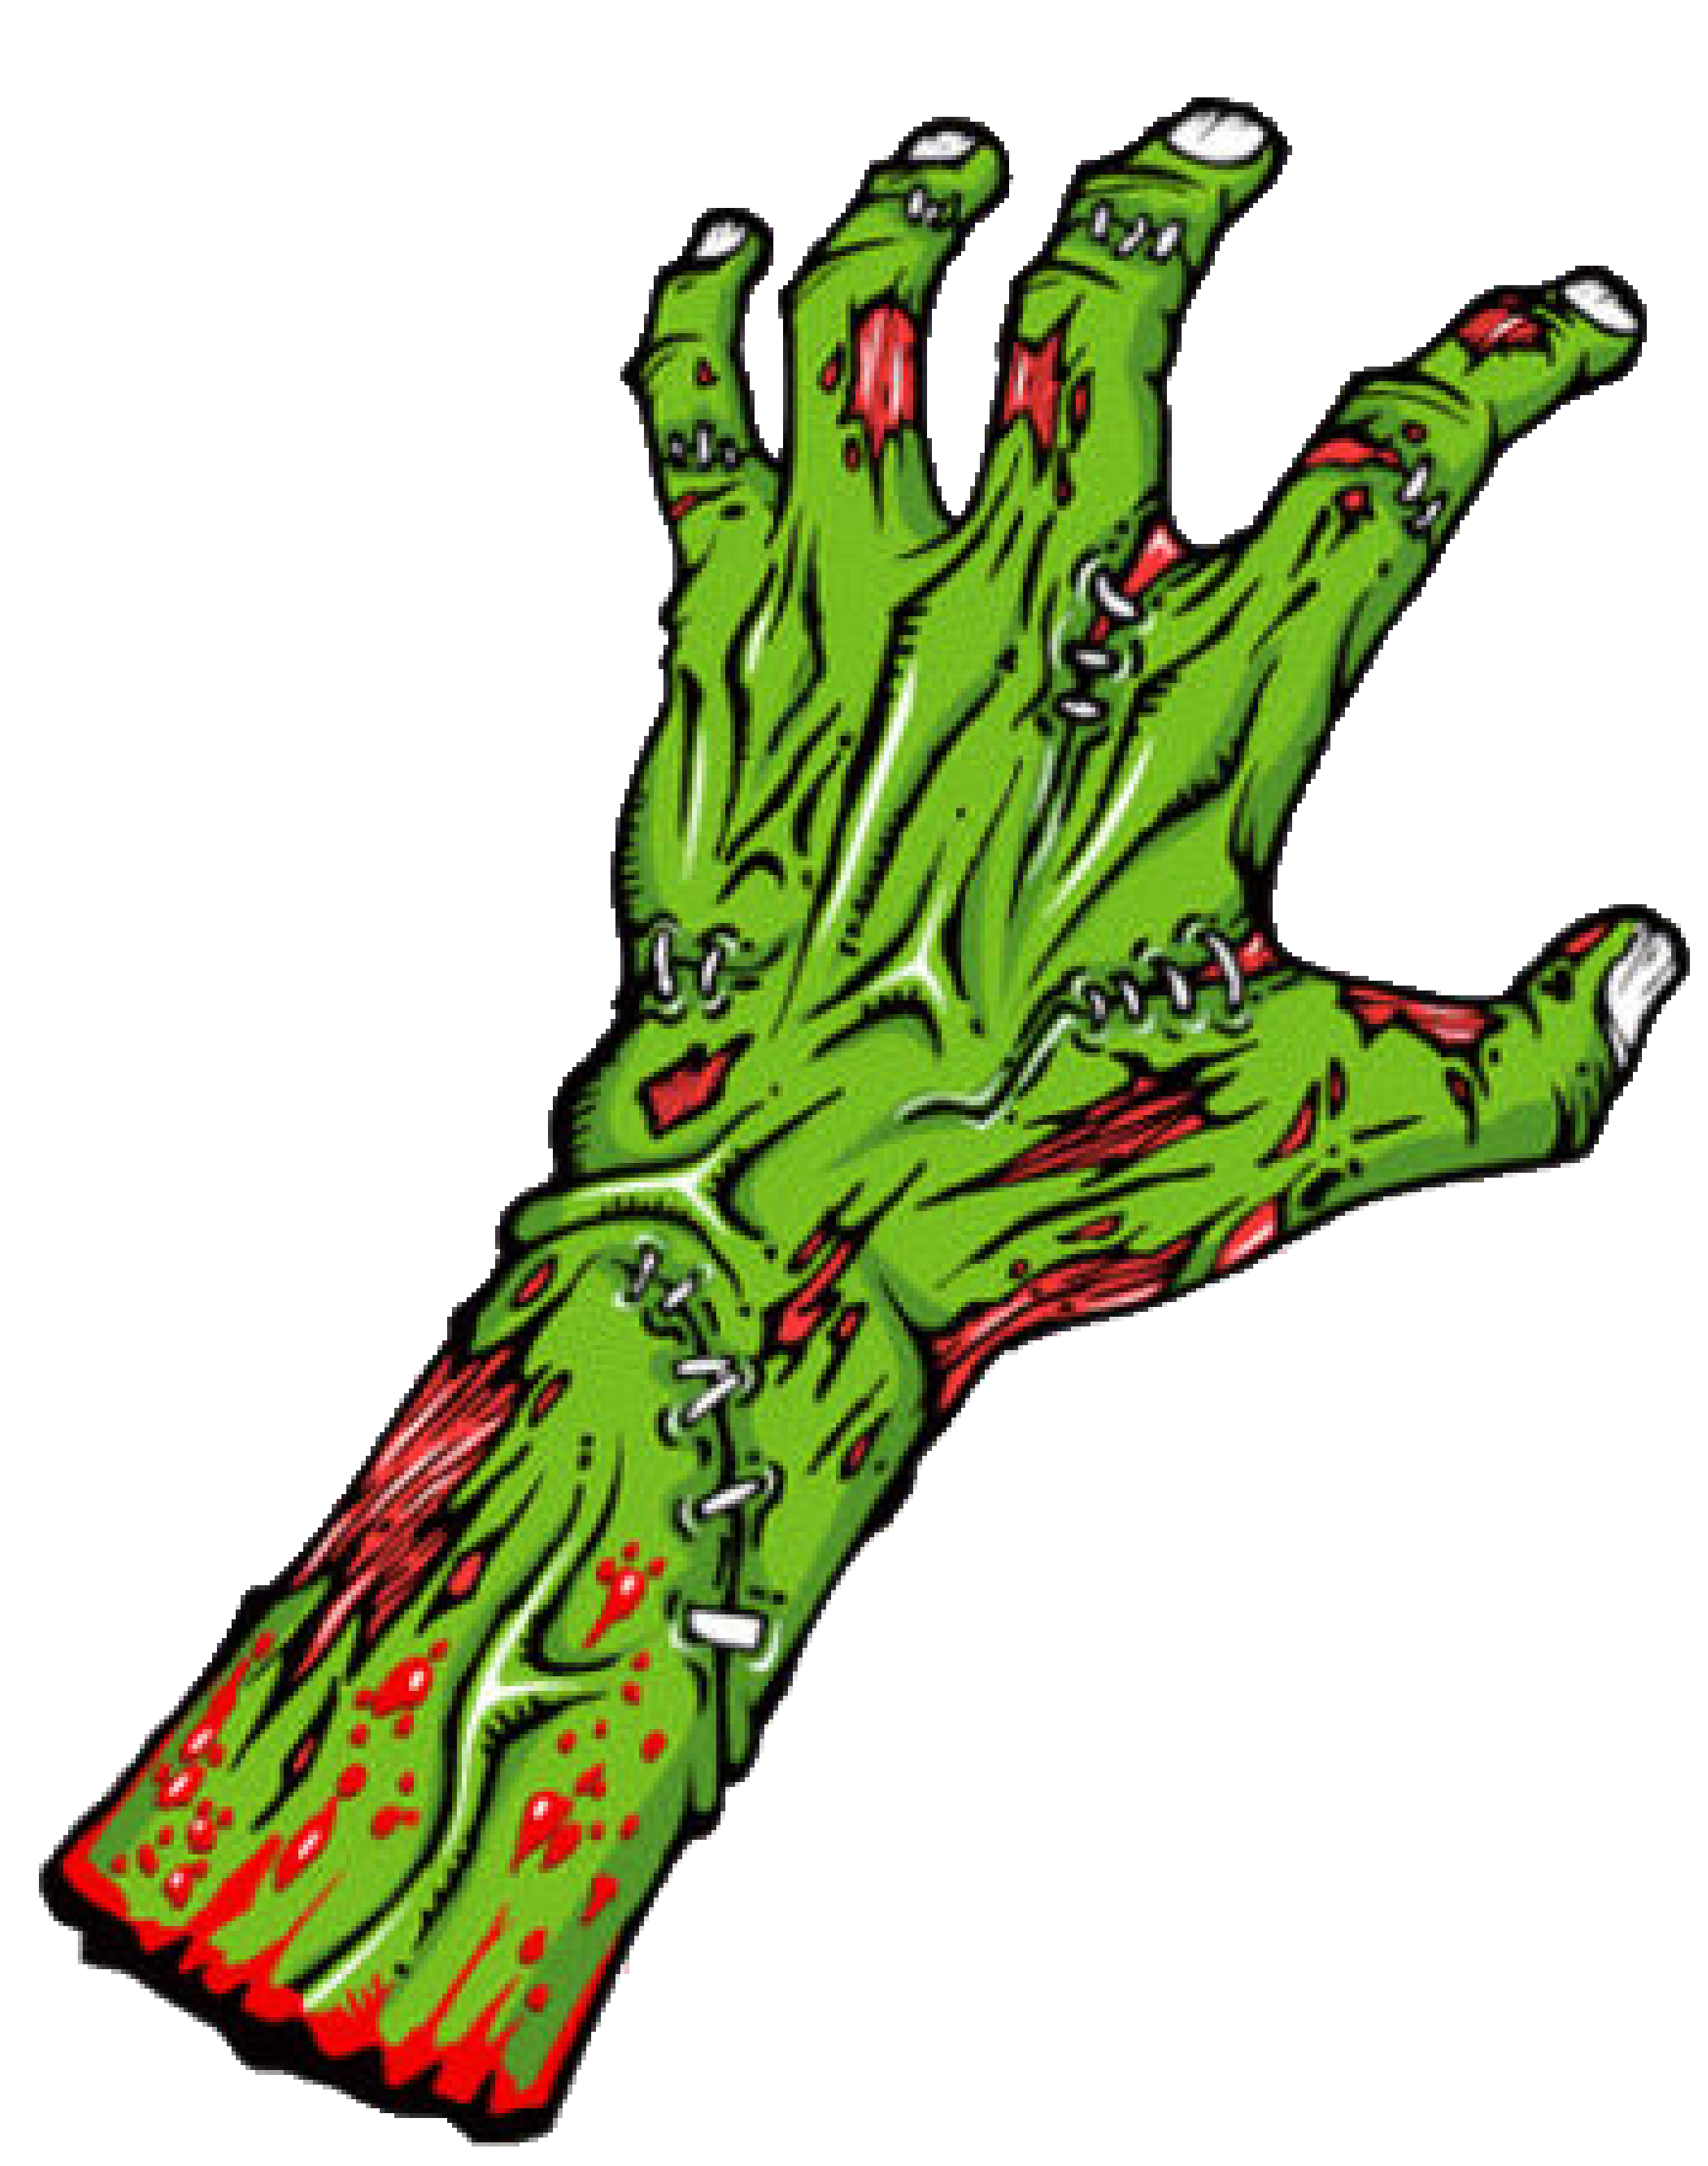 Zombie hand clipart 2 » Clipart Station.